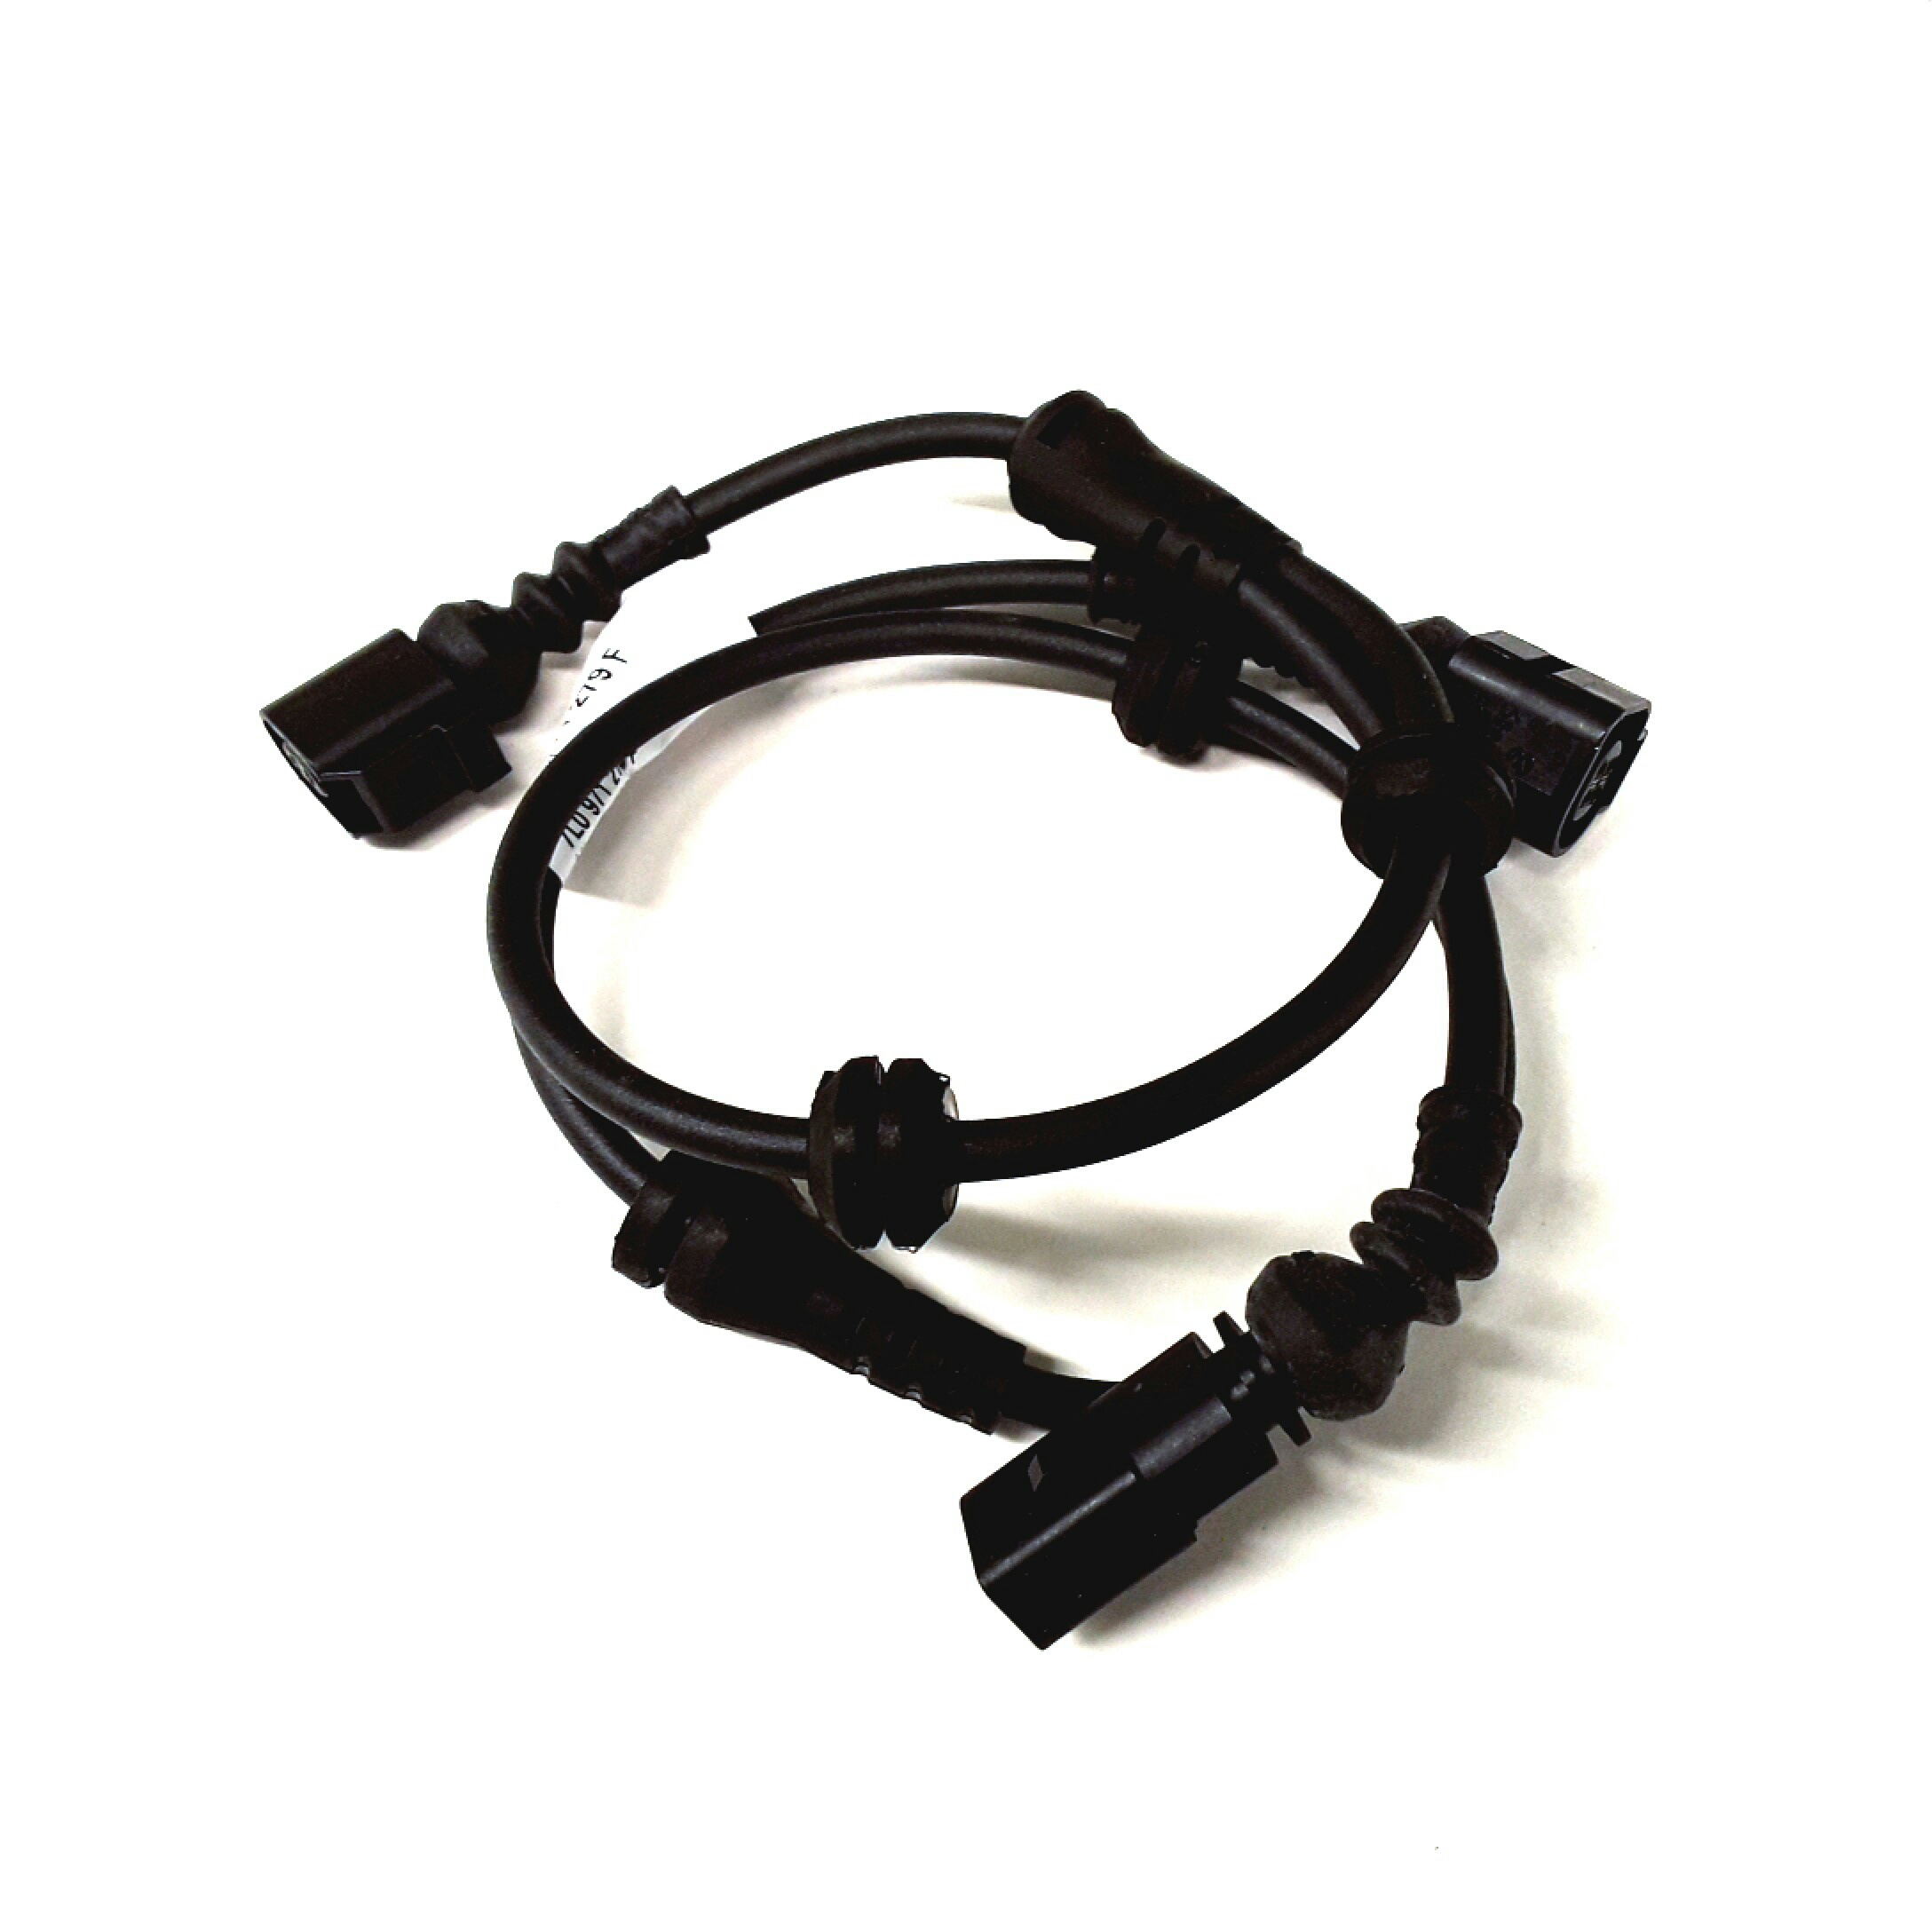 Audi Q7 Abs Wheel Speed Sensor Wiring Harness  Suspension